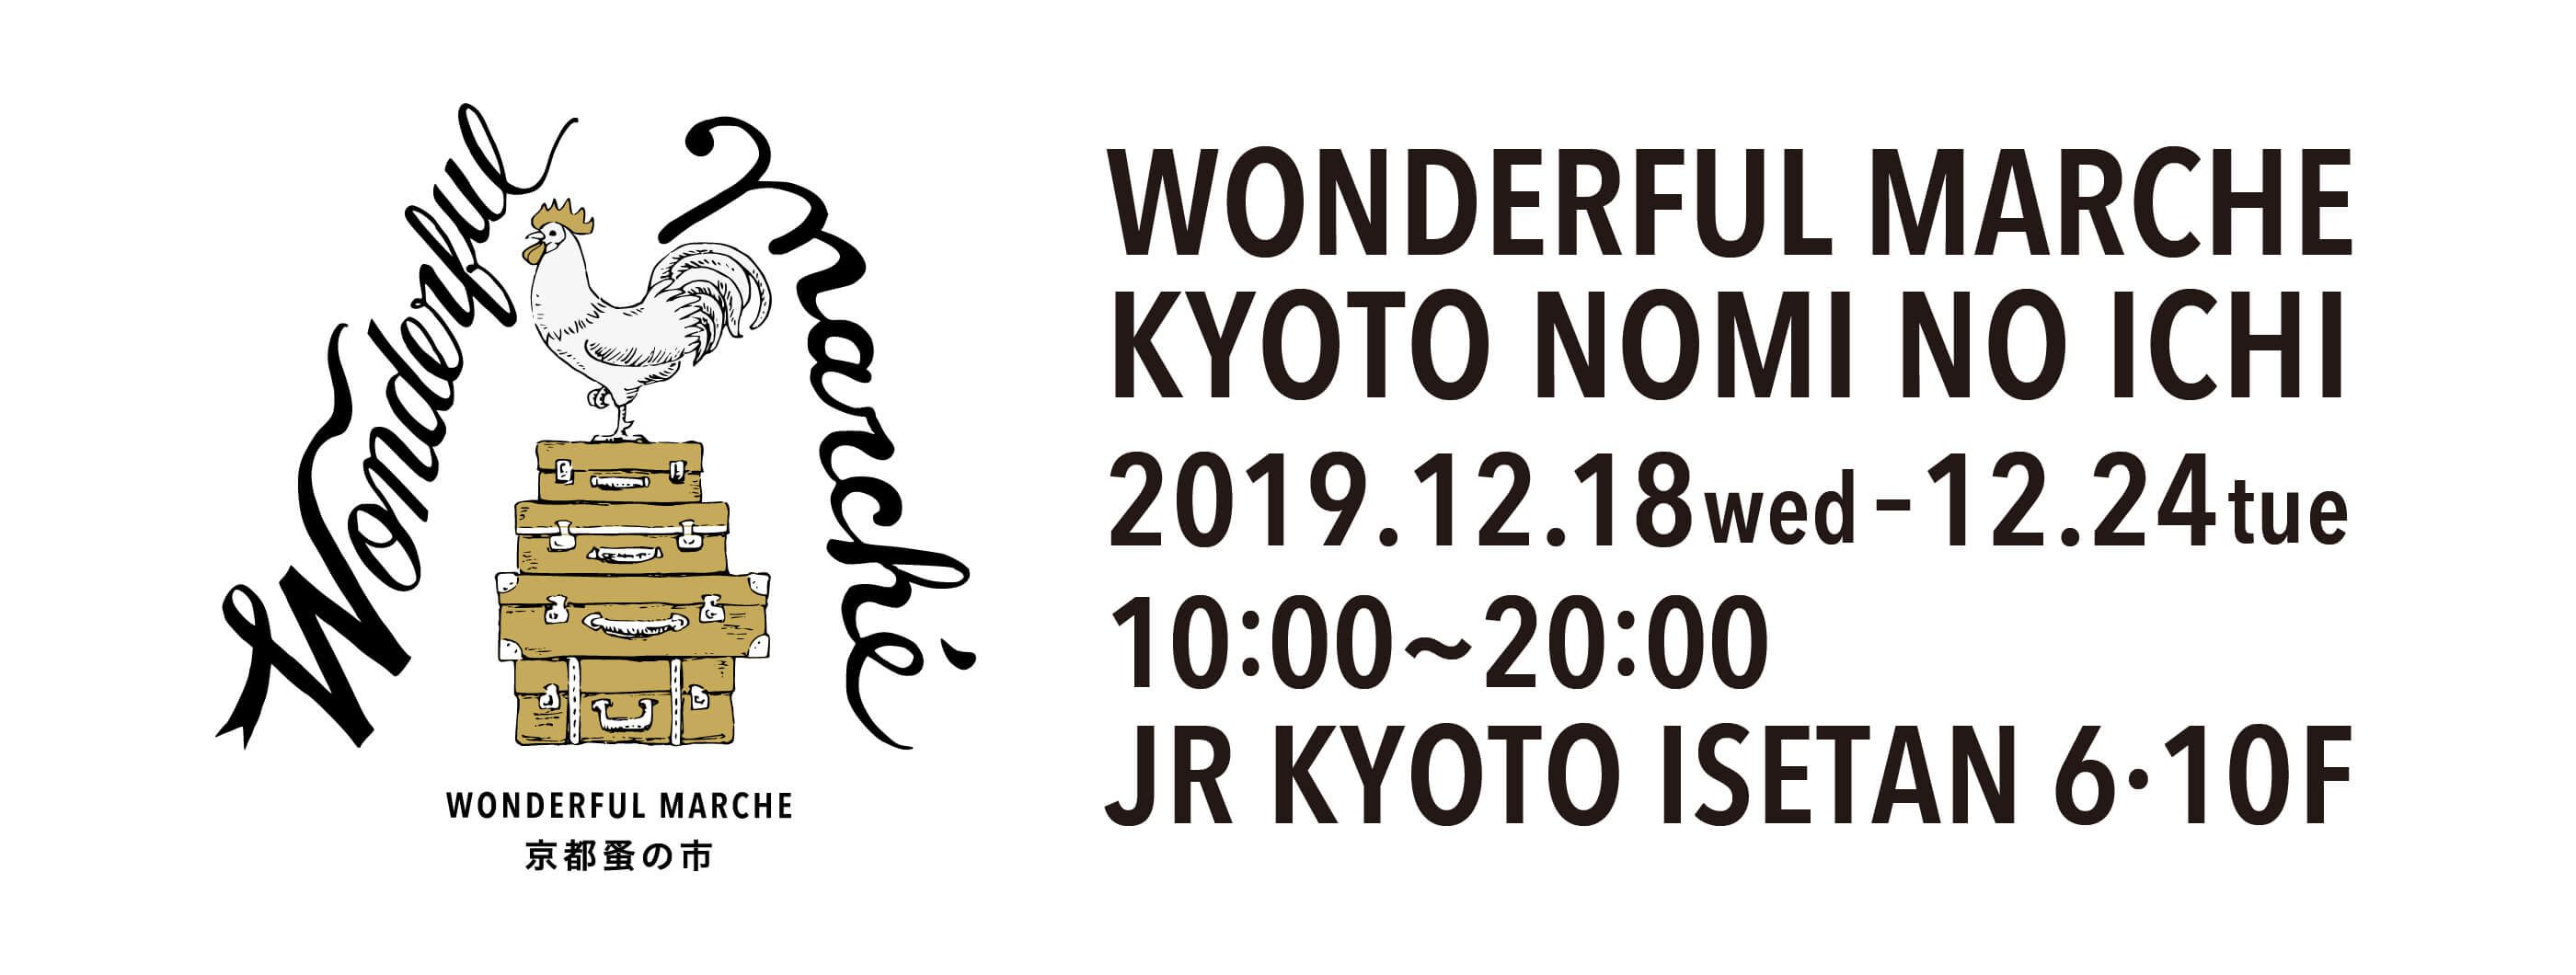 WONDERFUL MARCHE Vol.7